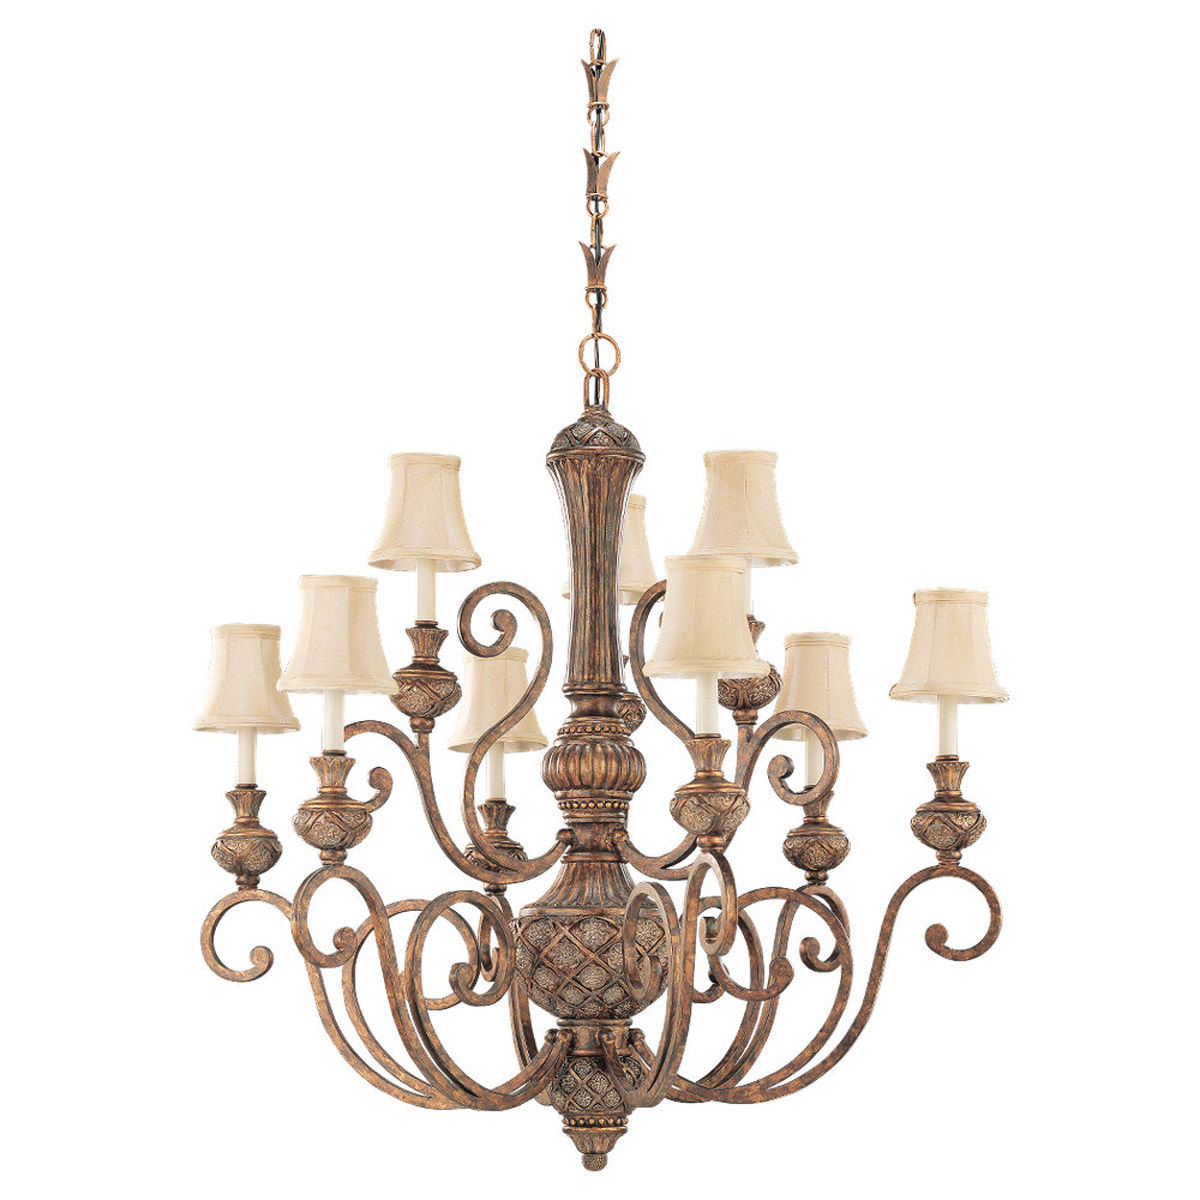 Sea Gull Lighting Highlands 9 Light Chandelier in Regal Bronze 31252-758 photo